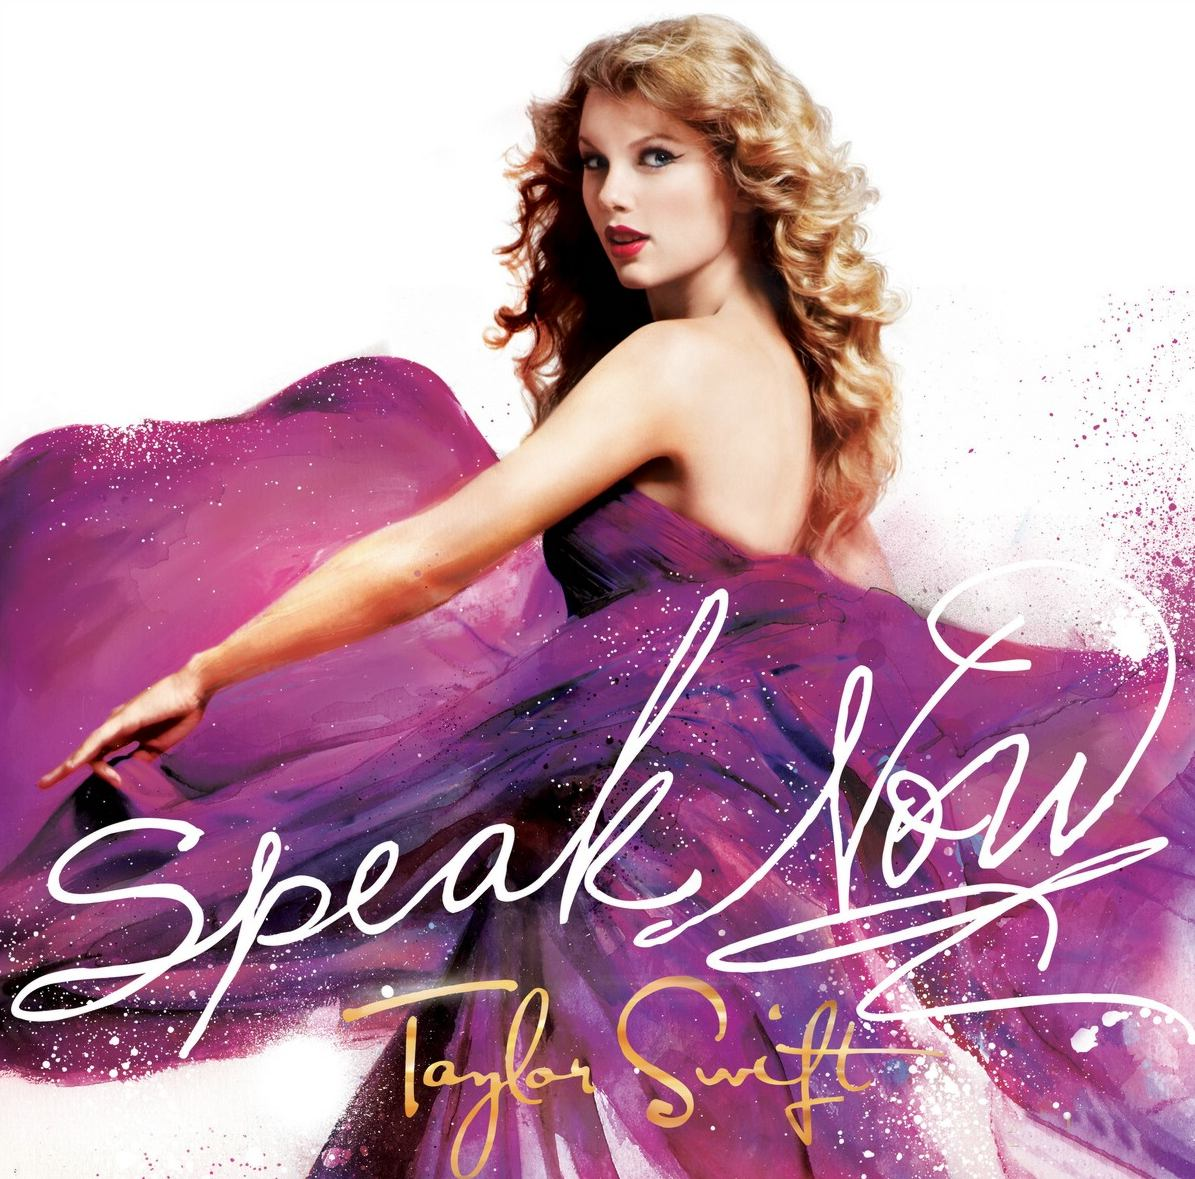 http://3.bp.blogspot.com/_yButrww01tQ/TTe6v-ImBRI/AAAAAAAAAD0/Jwt1u-Nneqw/s1600/taylor-swift-speak-now-01.jpg